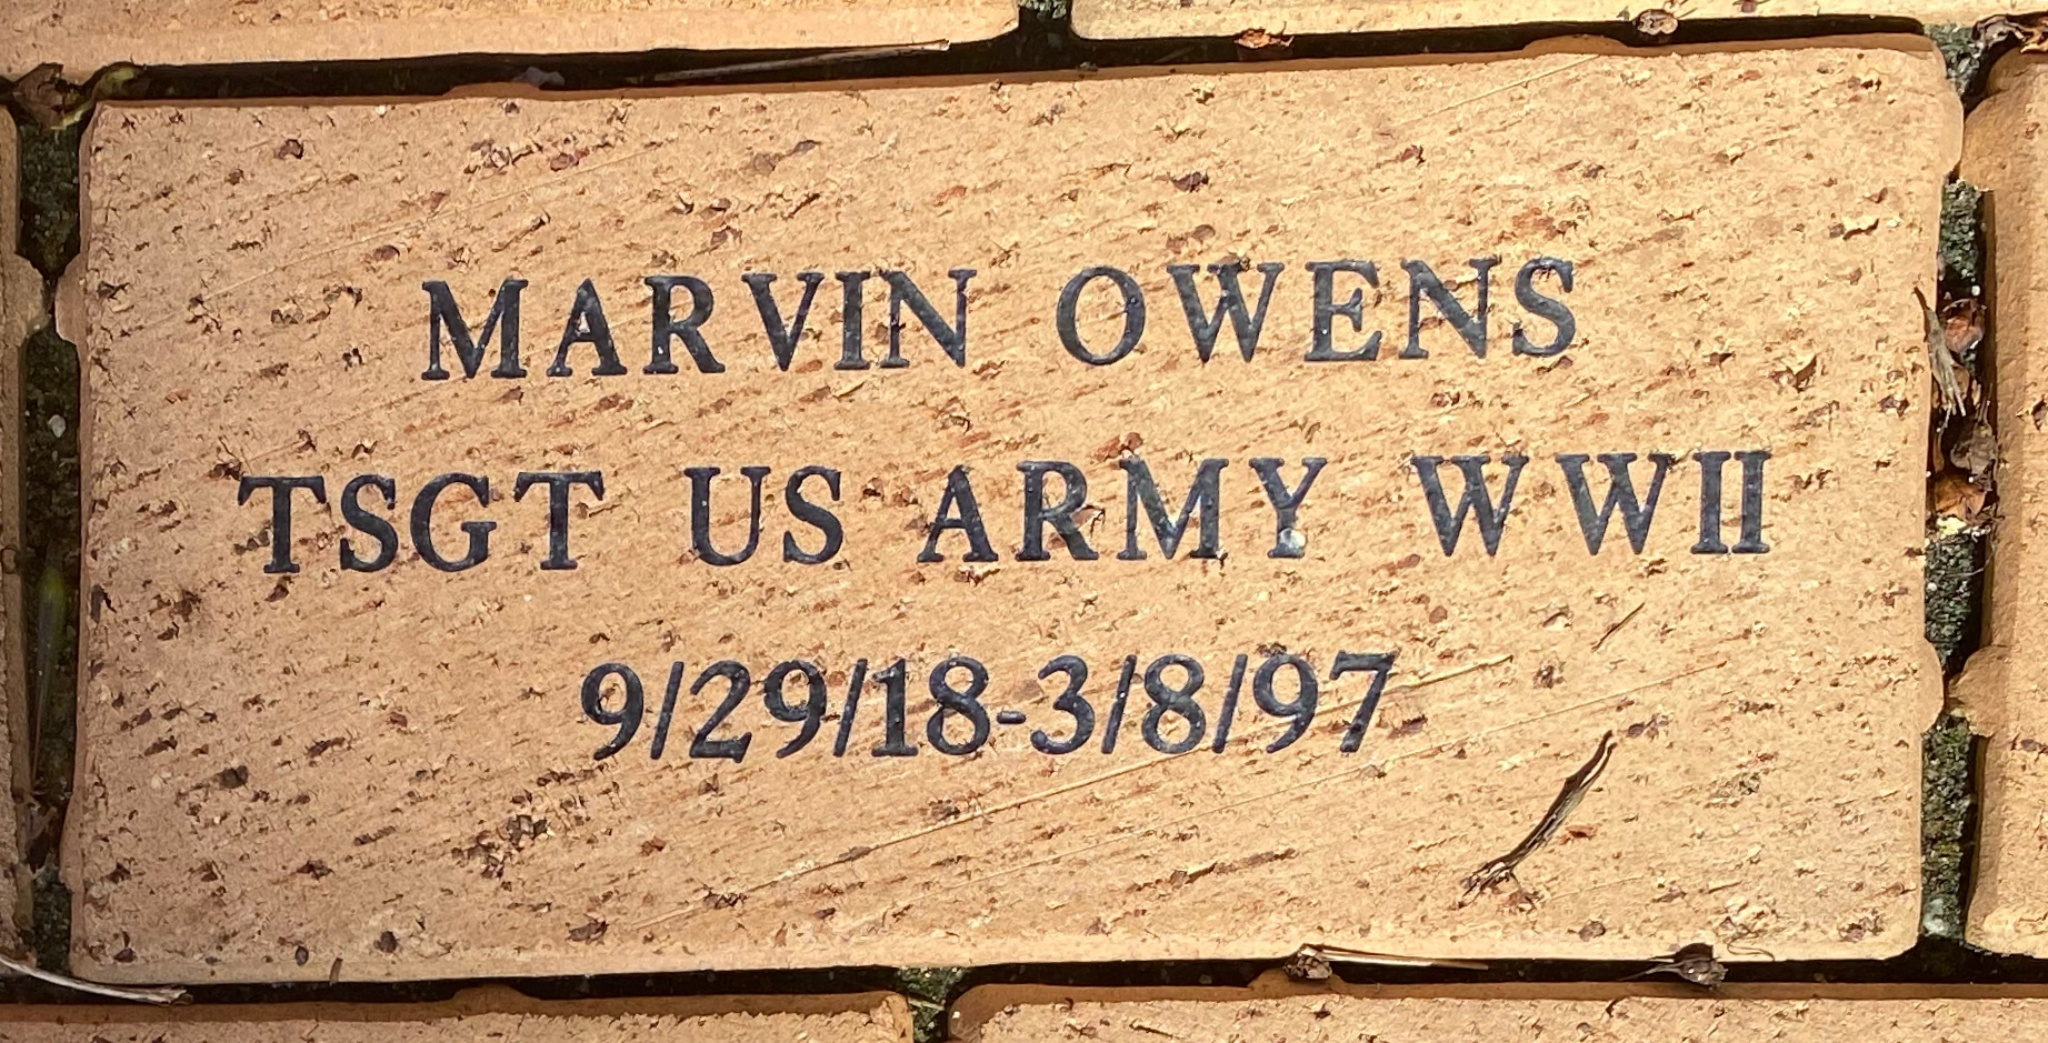 MARVIN OWENS TSGT US ARMY WWII 9/29/18-3/8/97